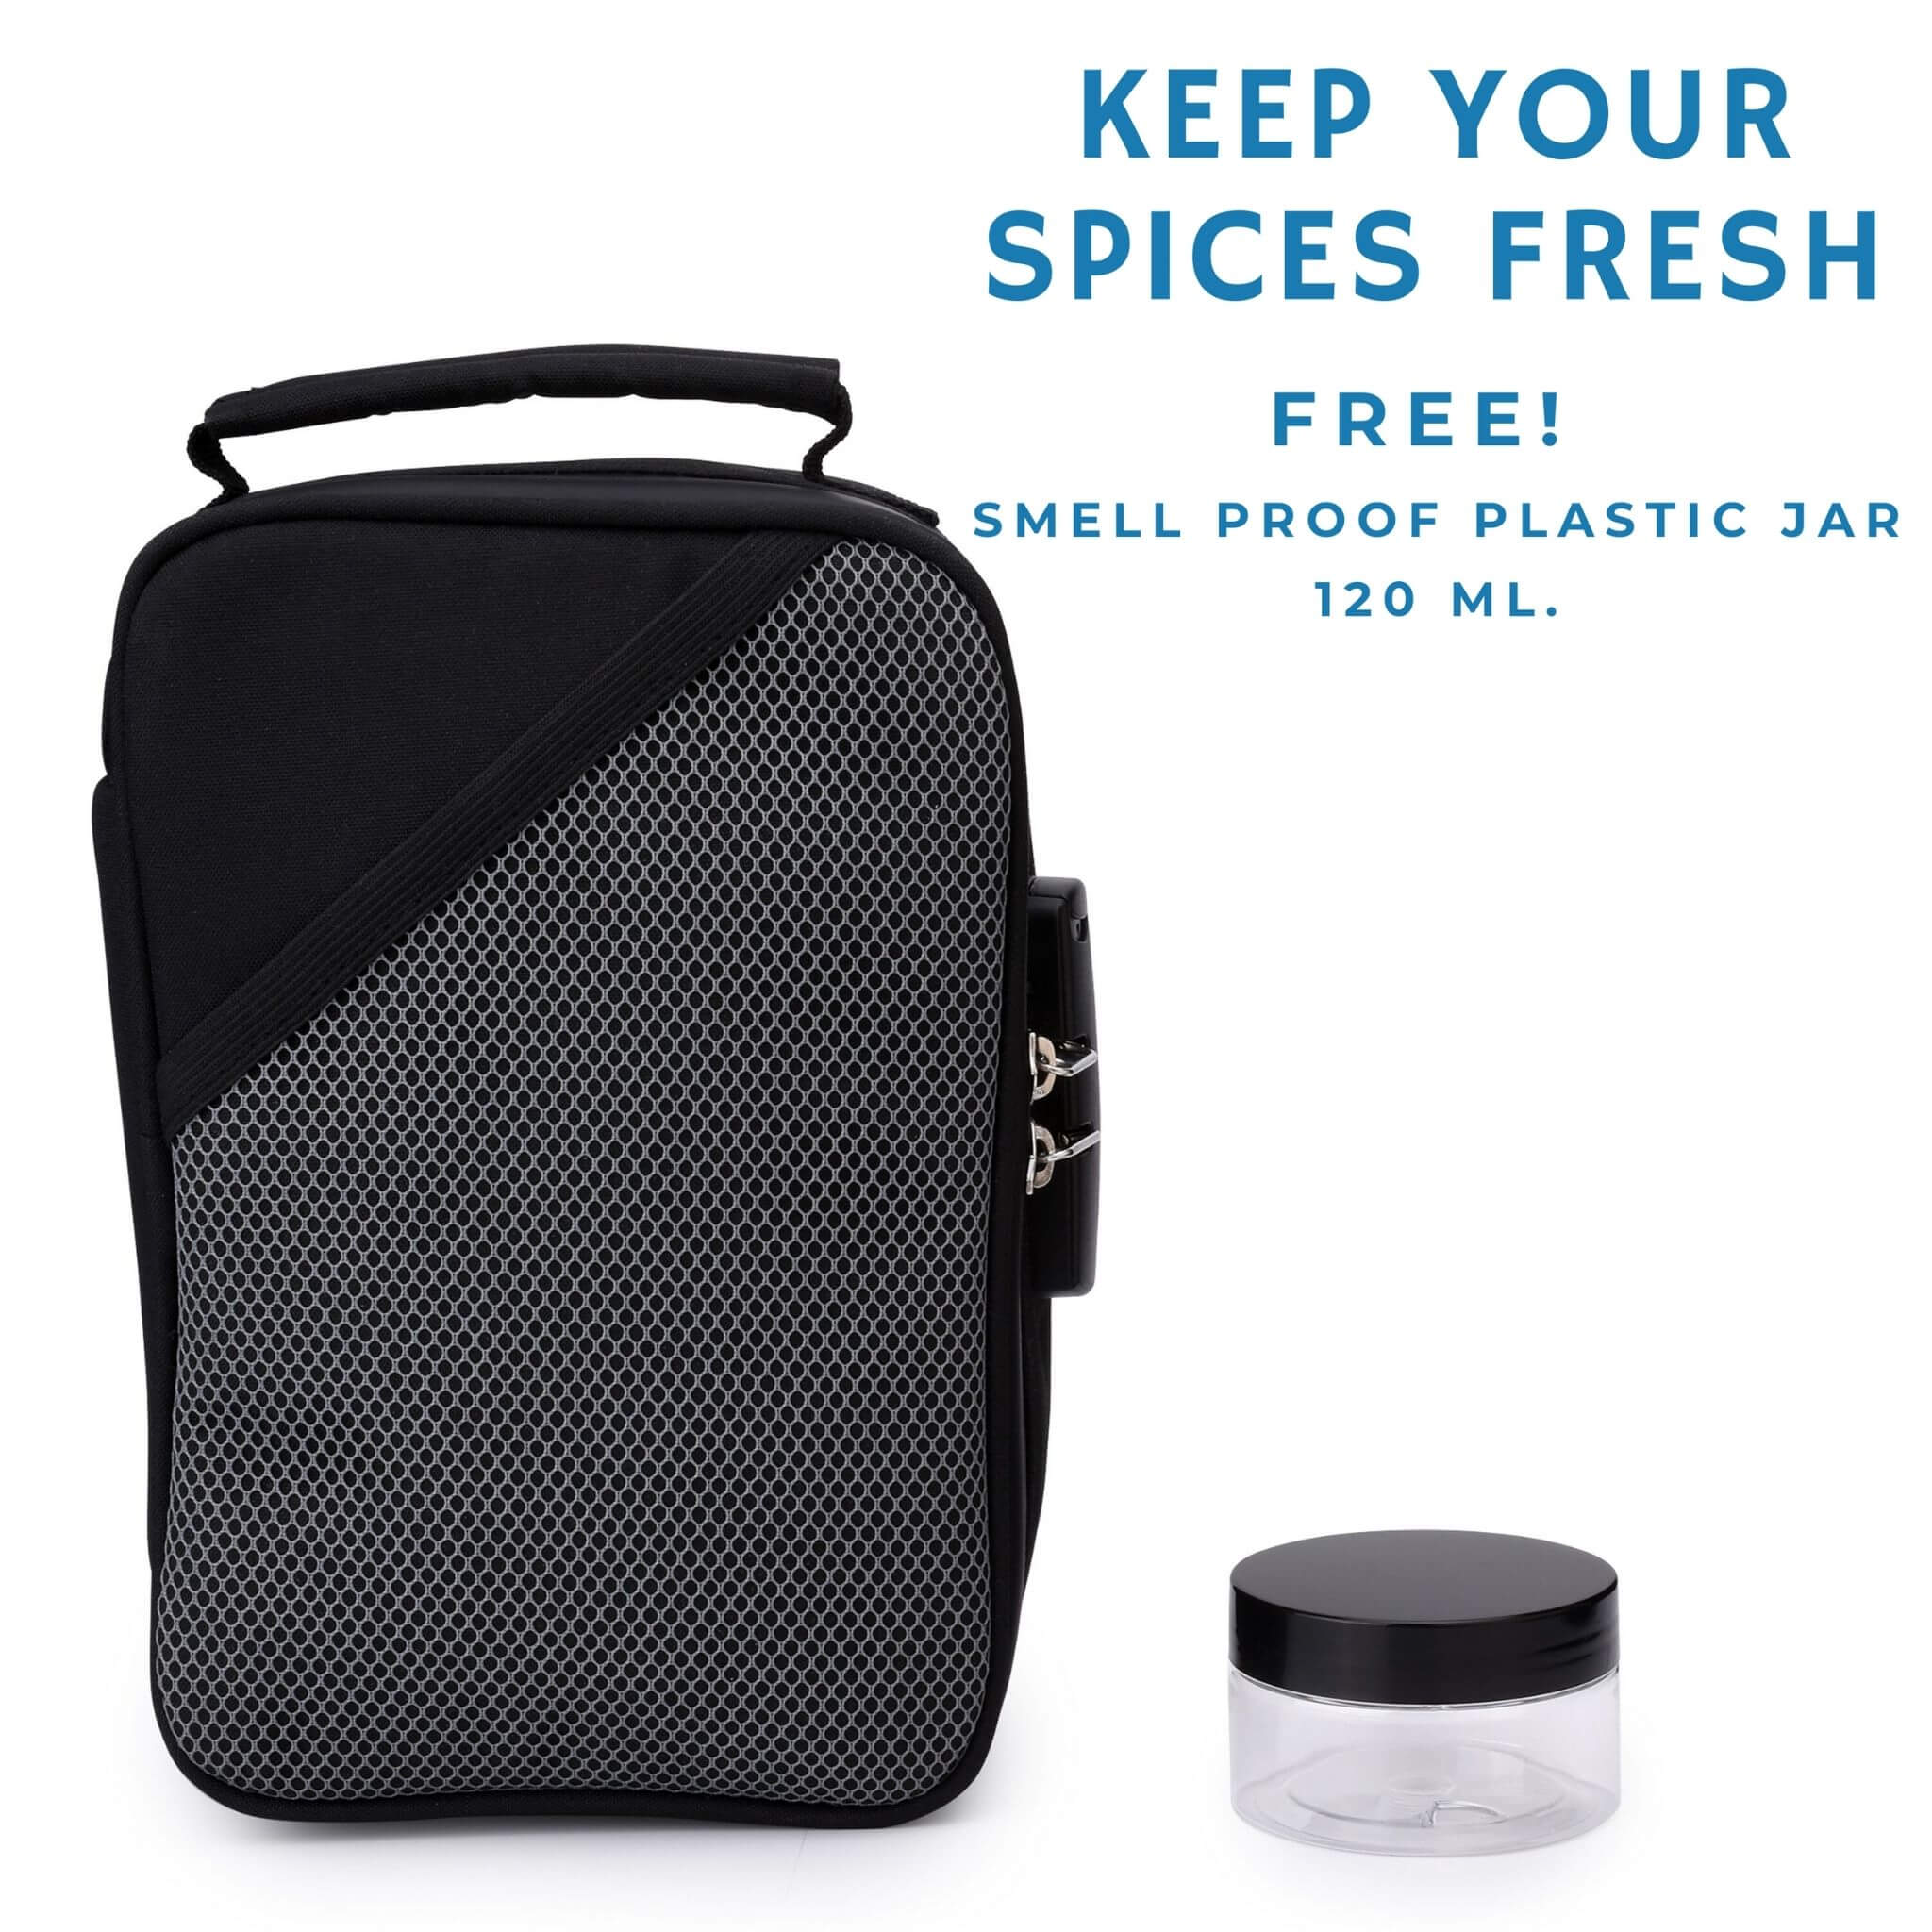 smell-proof bag with lock and bonus jar